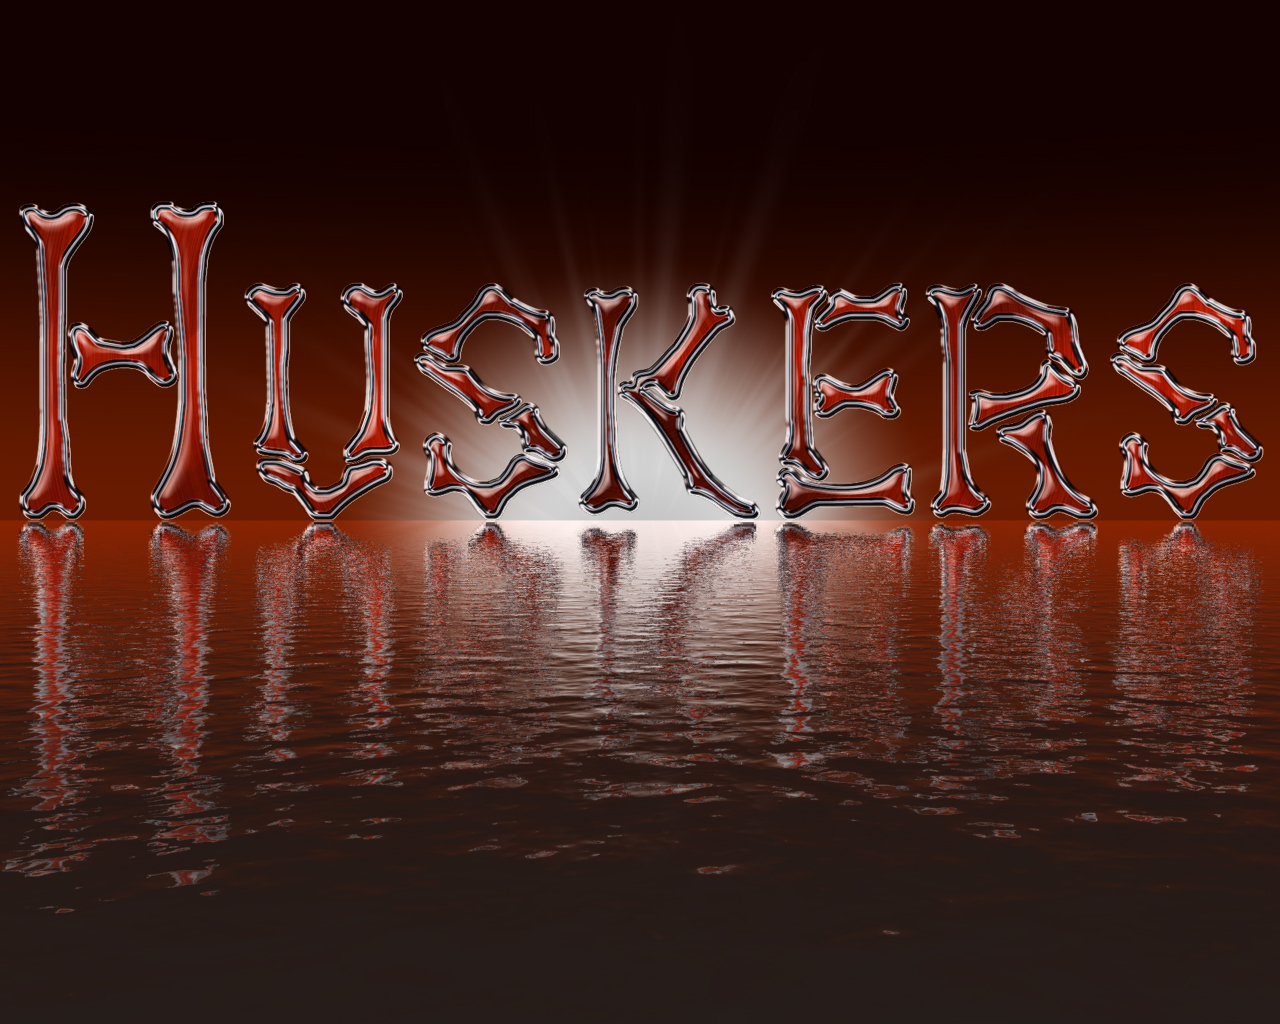 Huskers Bone Glass Red 1280 x 1024 1280x1024